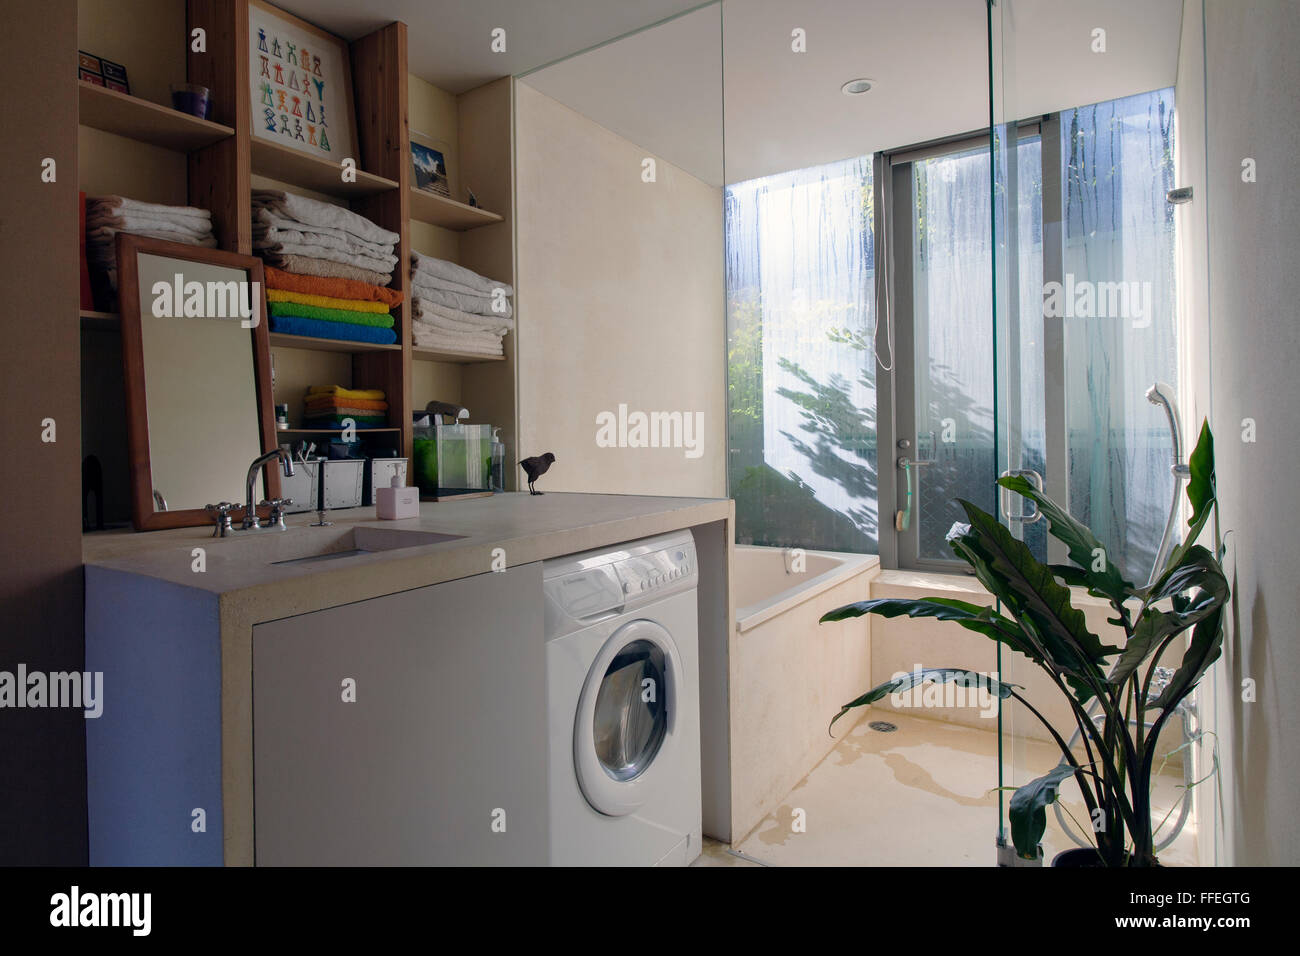 Japanese contemporary bathroom in an apartment - Stock Image